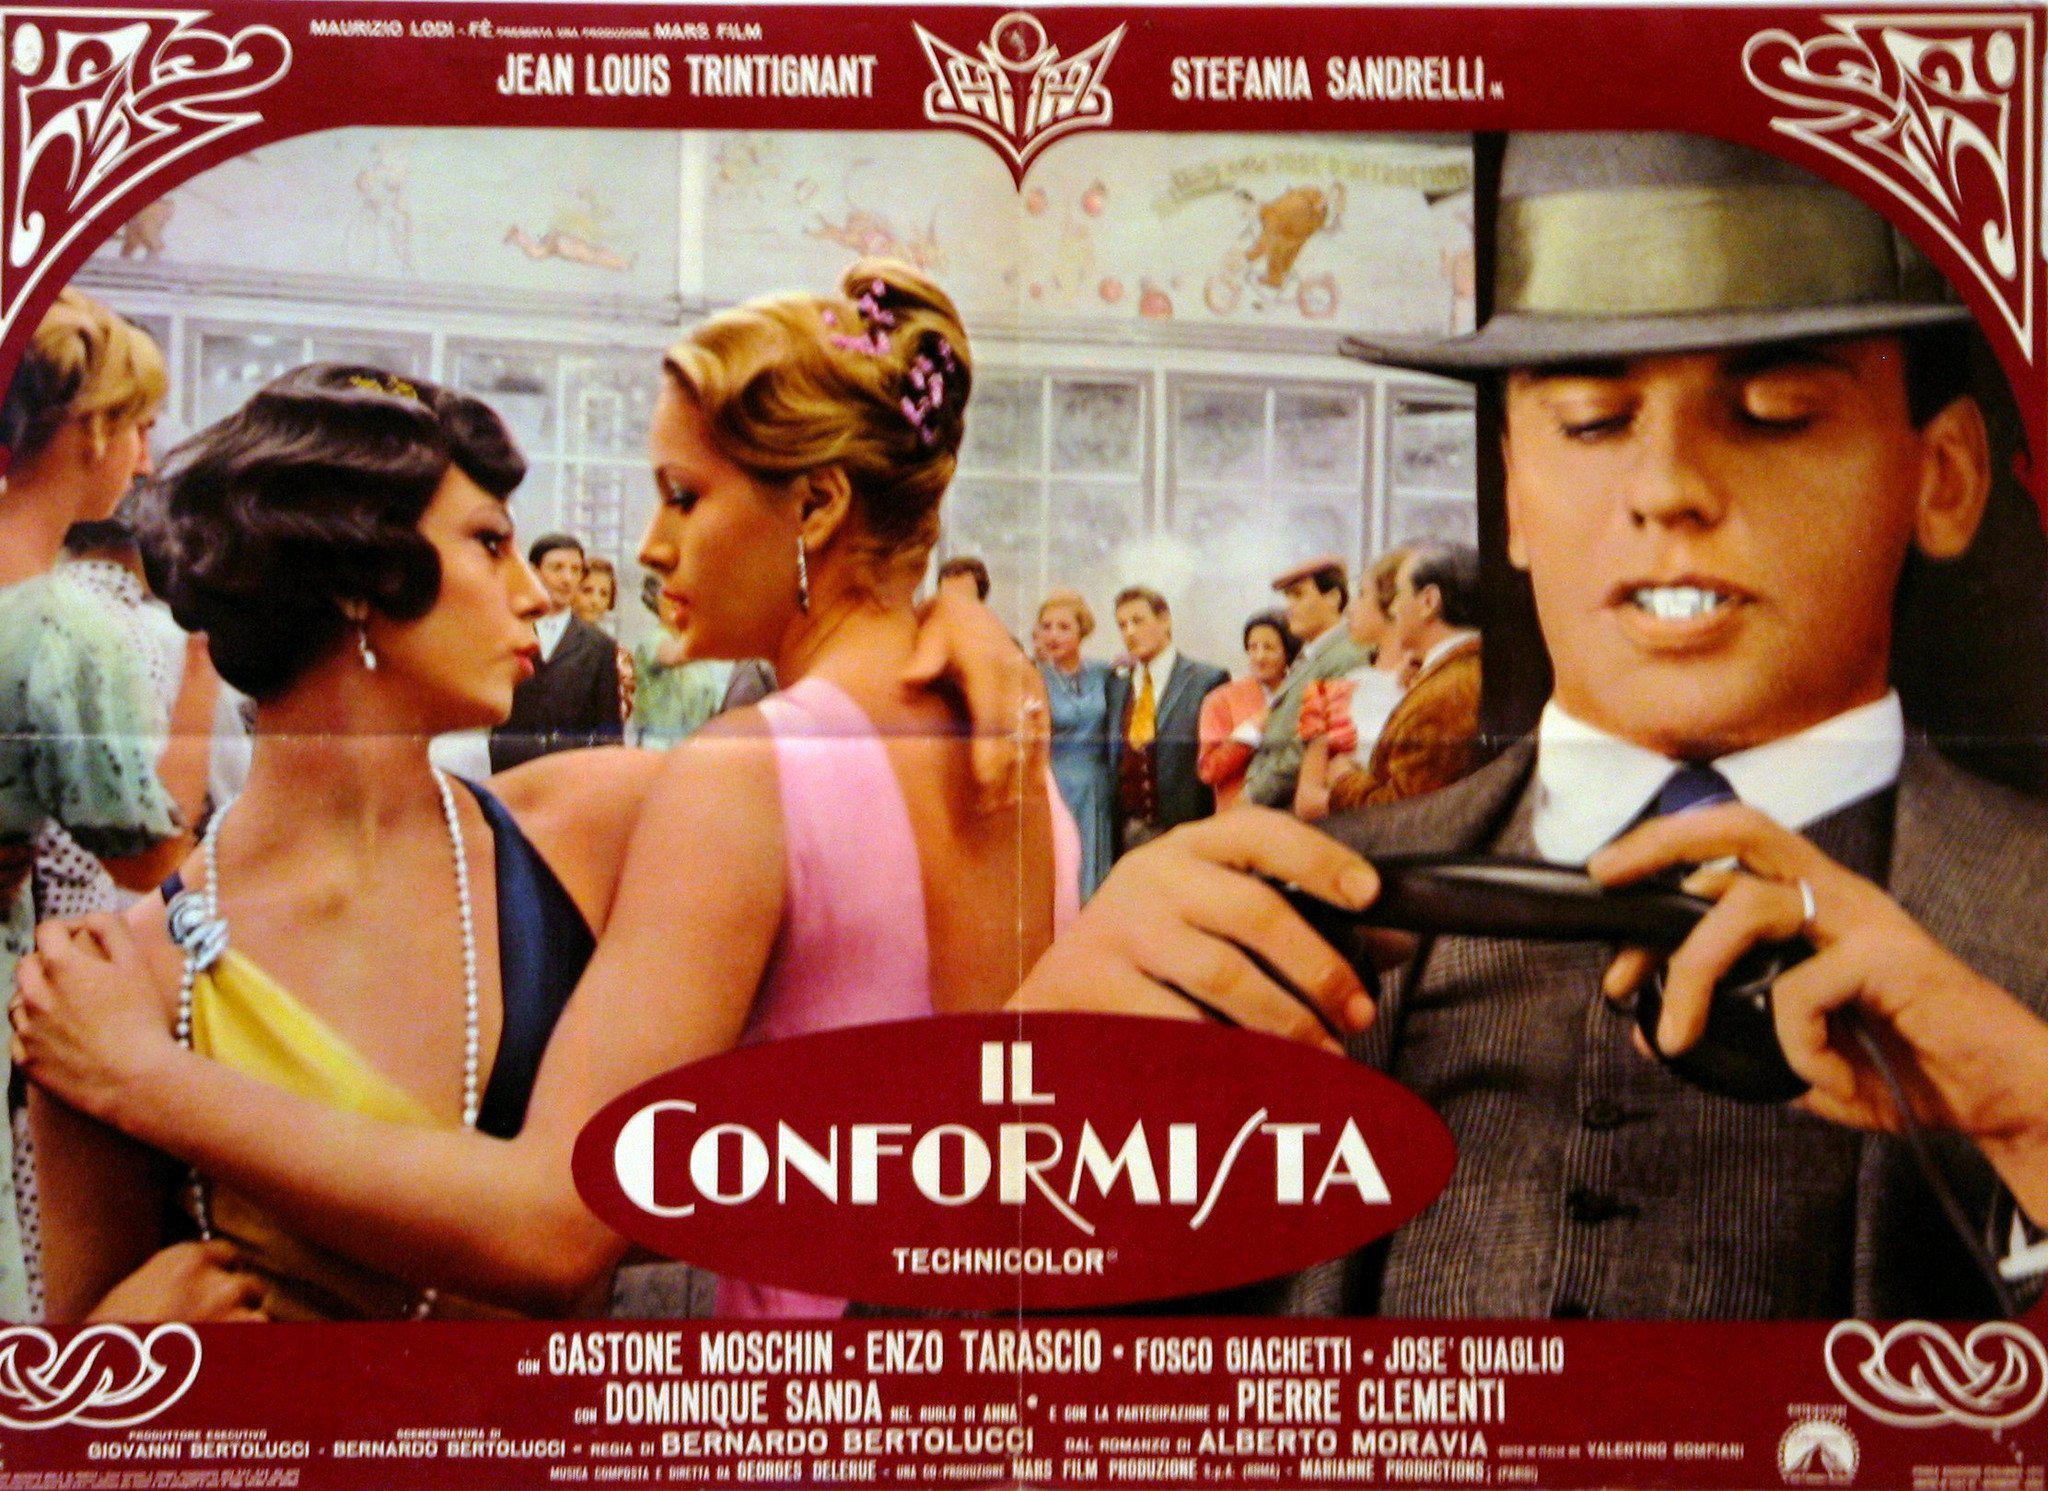 The Conformist (Il Conformista) Italian Photobusta (18x26) Original Vintage Movie Poster